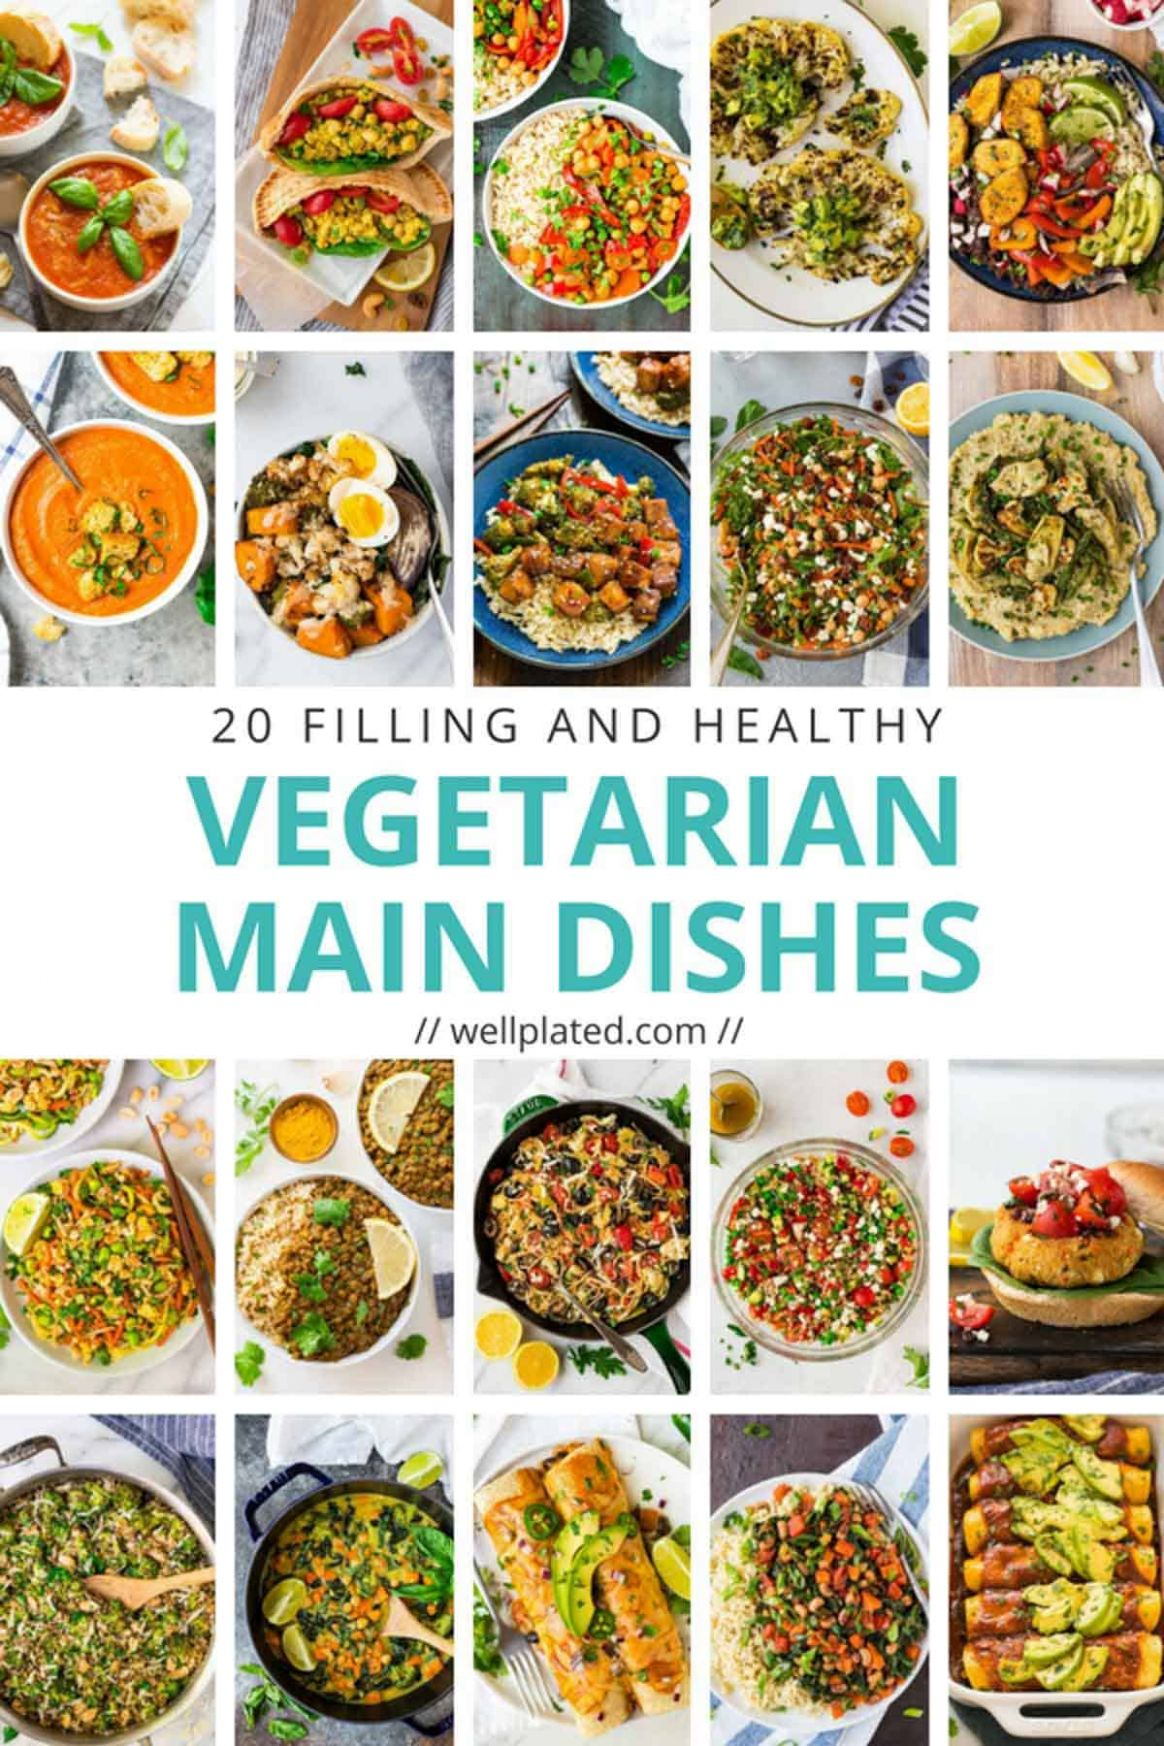 10 Healthy Vegetarian Dinner Recipes - Healthy Recipes Vegetarian